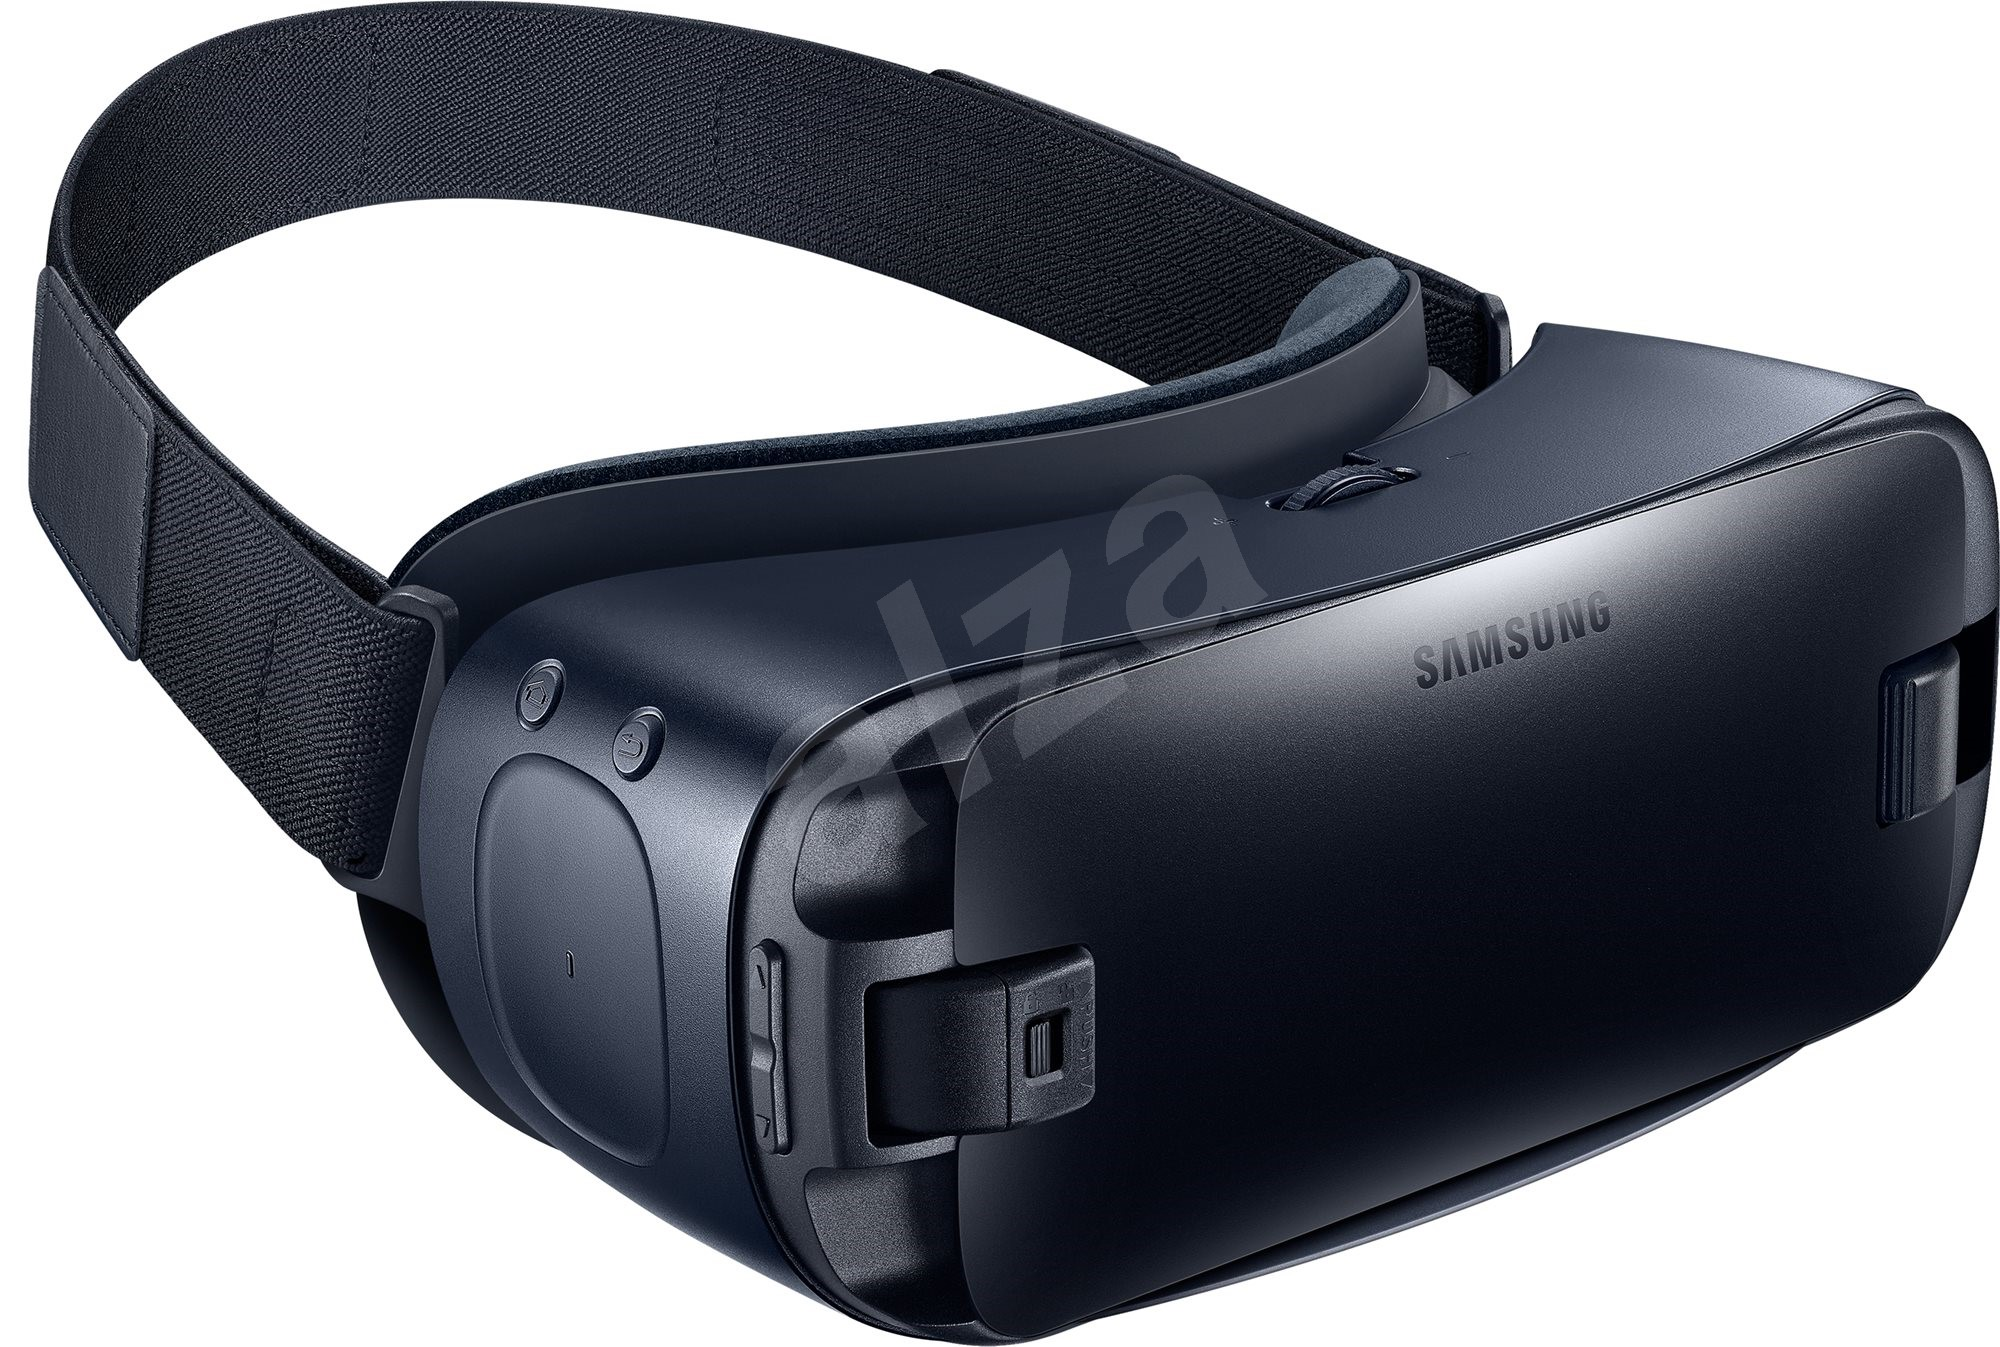 samsung gear vr brille f r virtuelle realit t. Black Bedroom Furniture Sets. Home Design Ideas